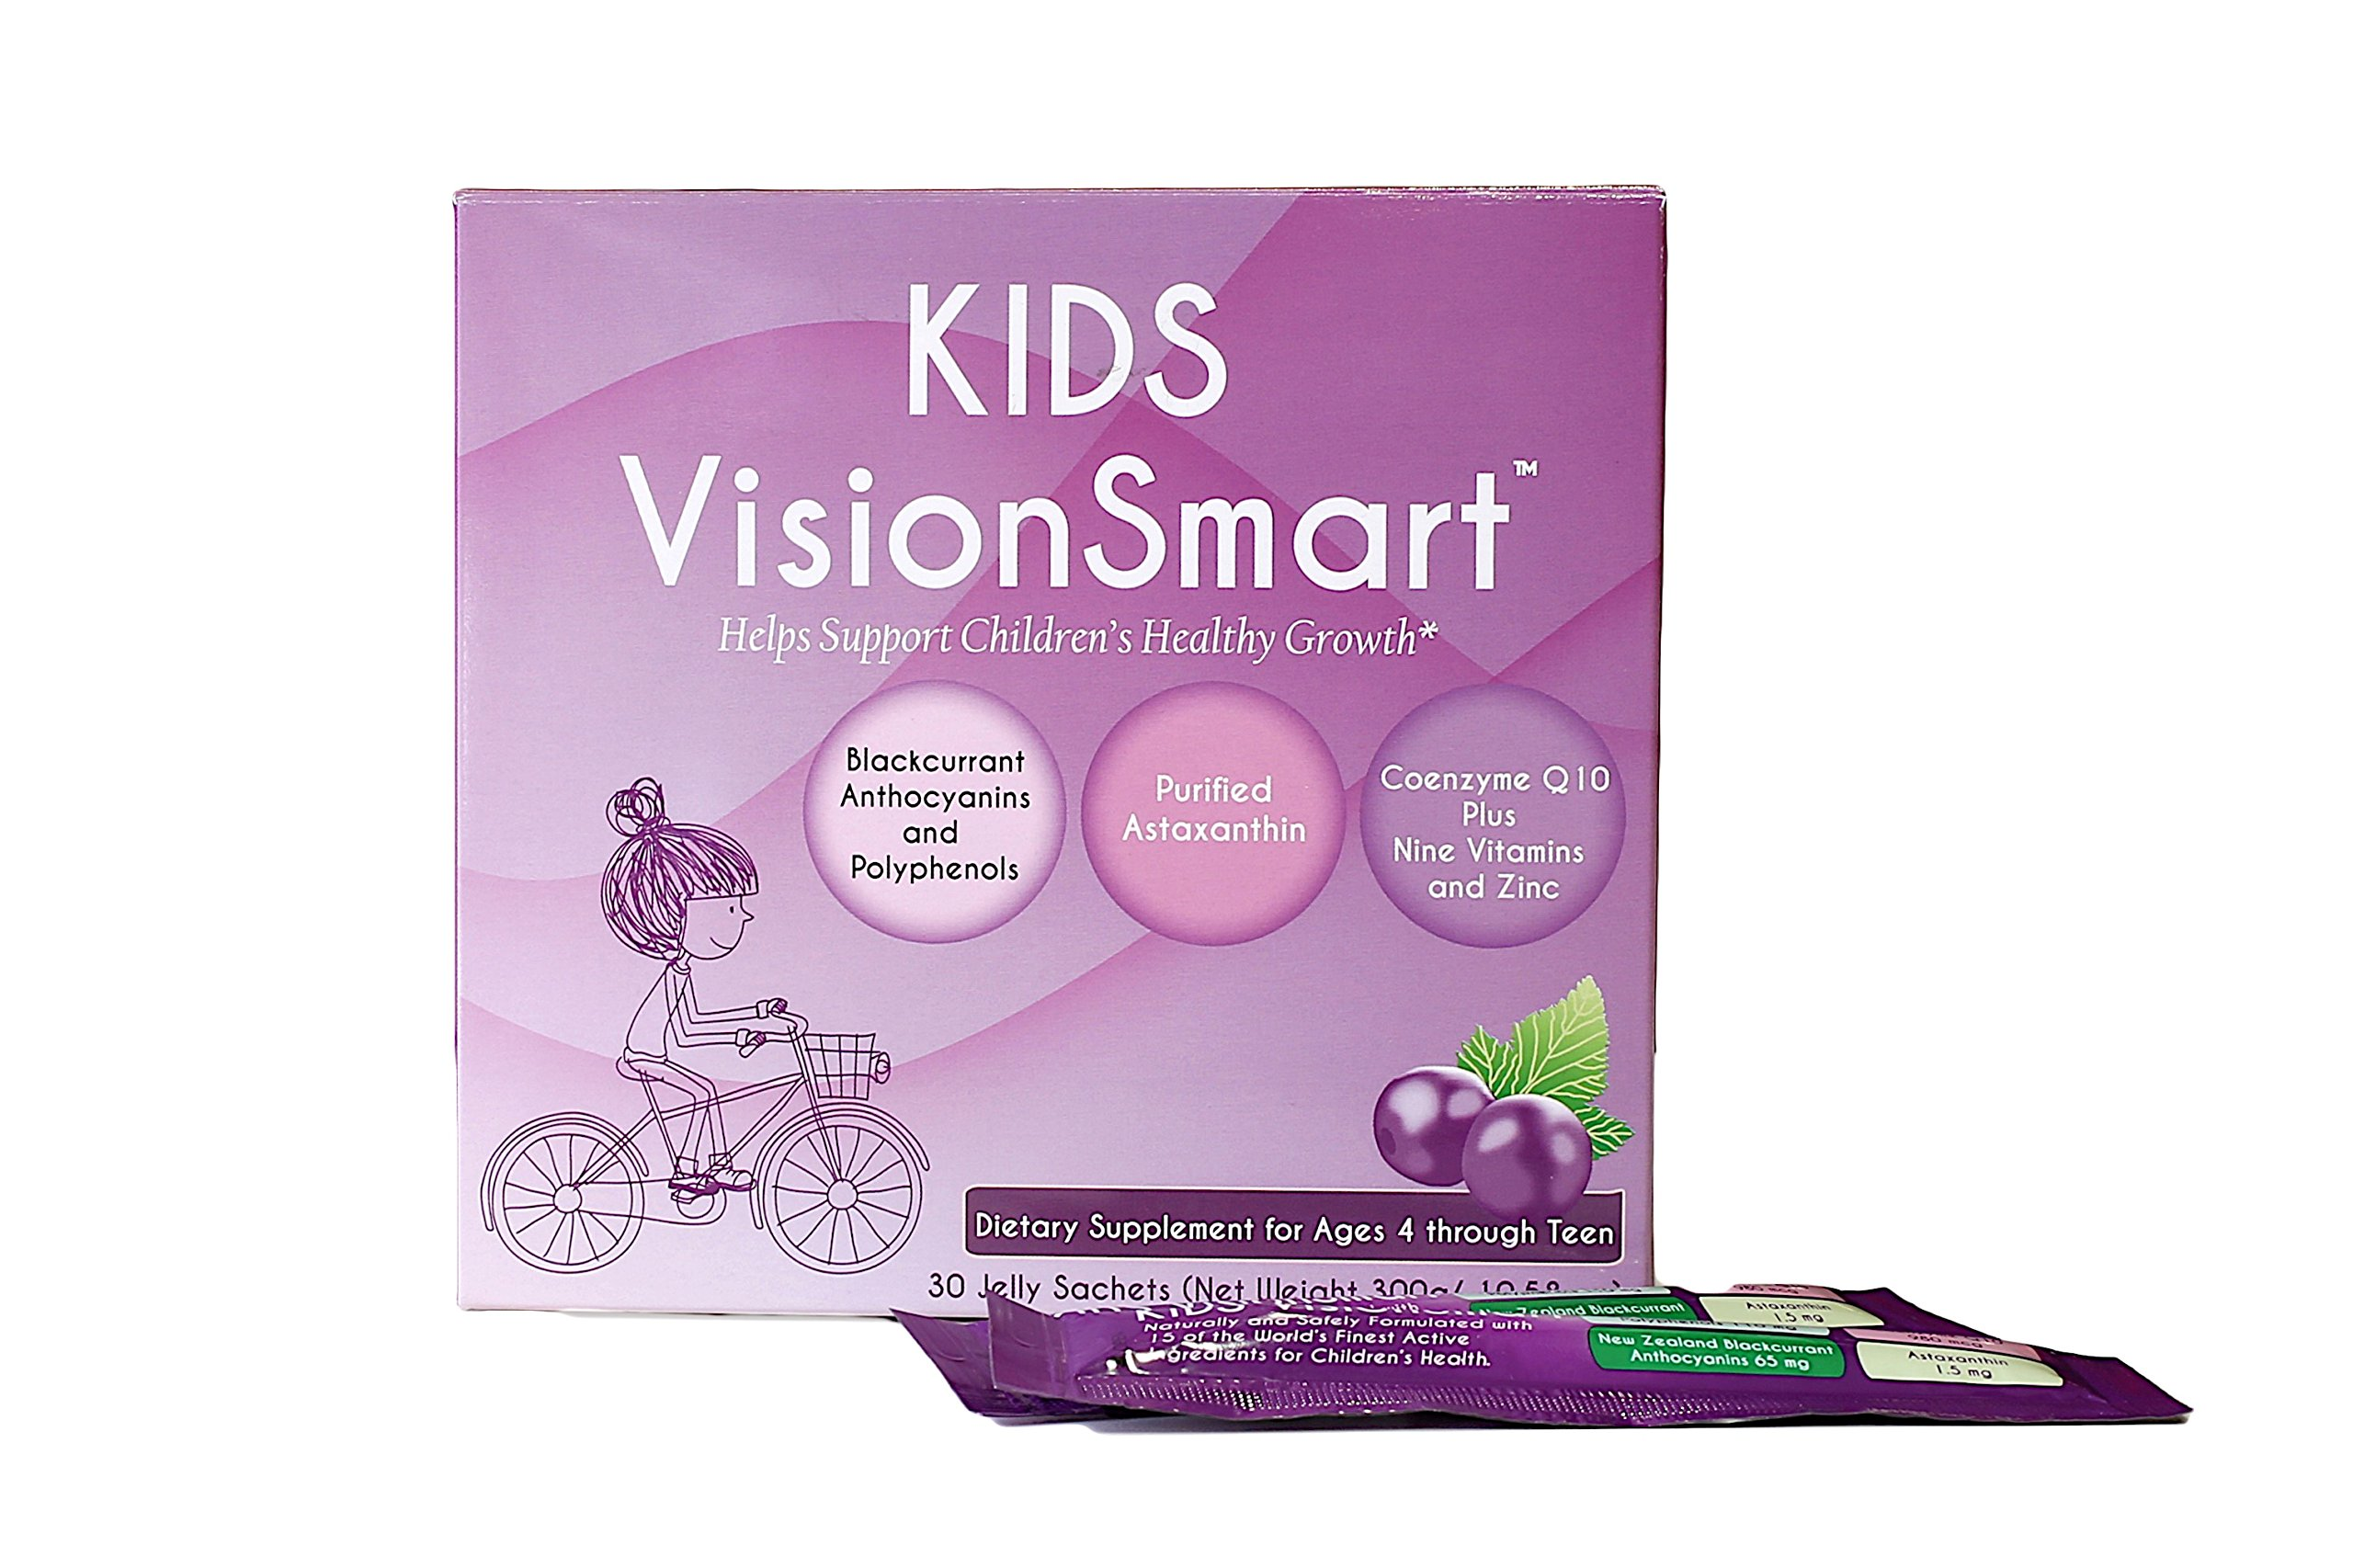 Vision Smart Center - Kids Multivitamin, Jelly Based Super Supplement made of Premium Ingredients from new Zealand Anthocyanin, Astaxanchin, CoQ10 | 30 Jelly Sachets